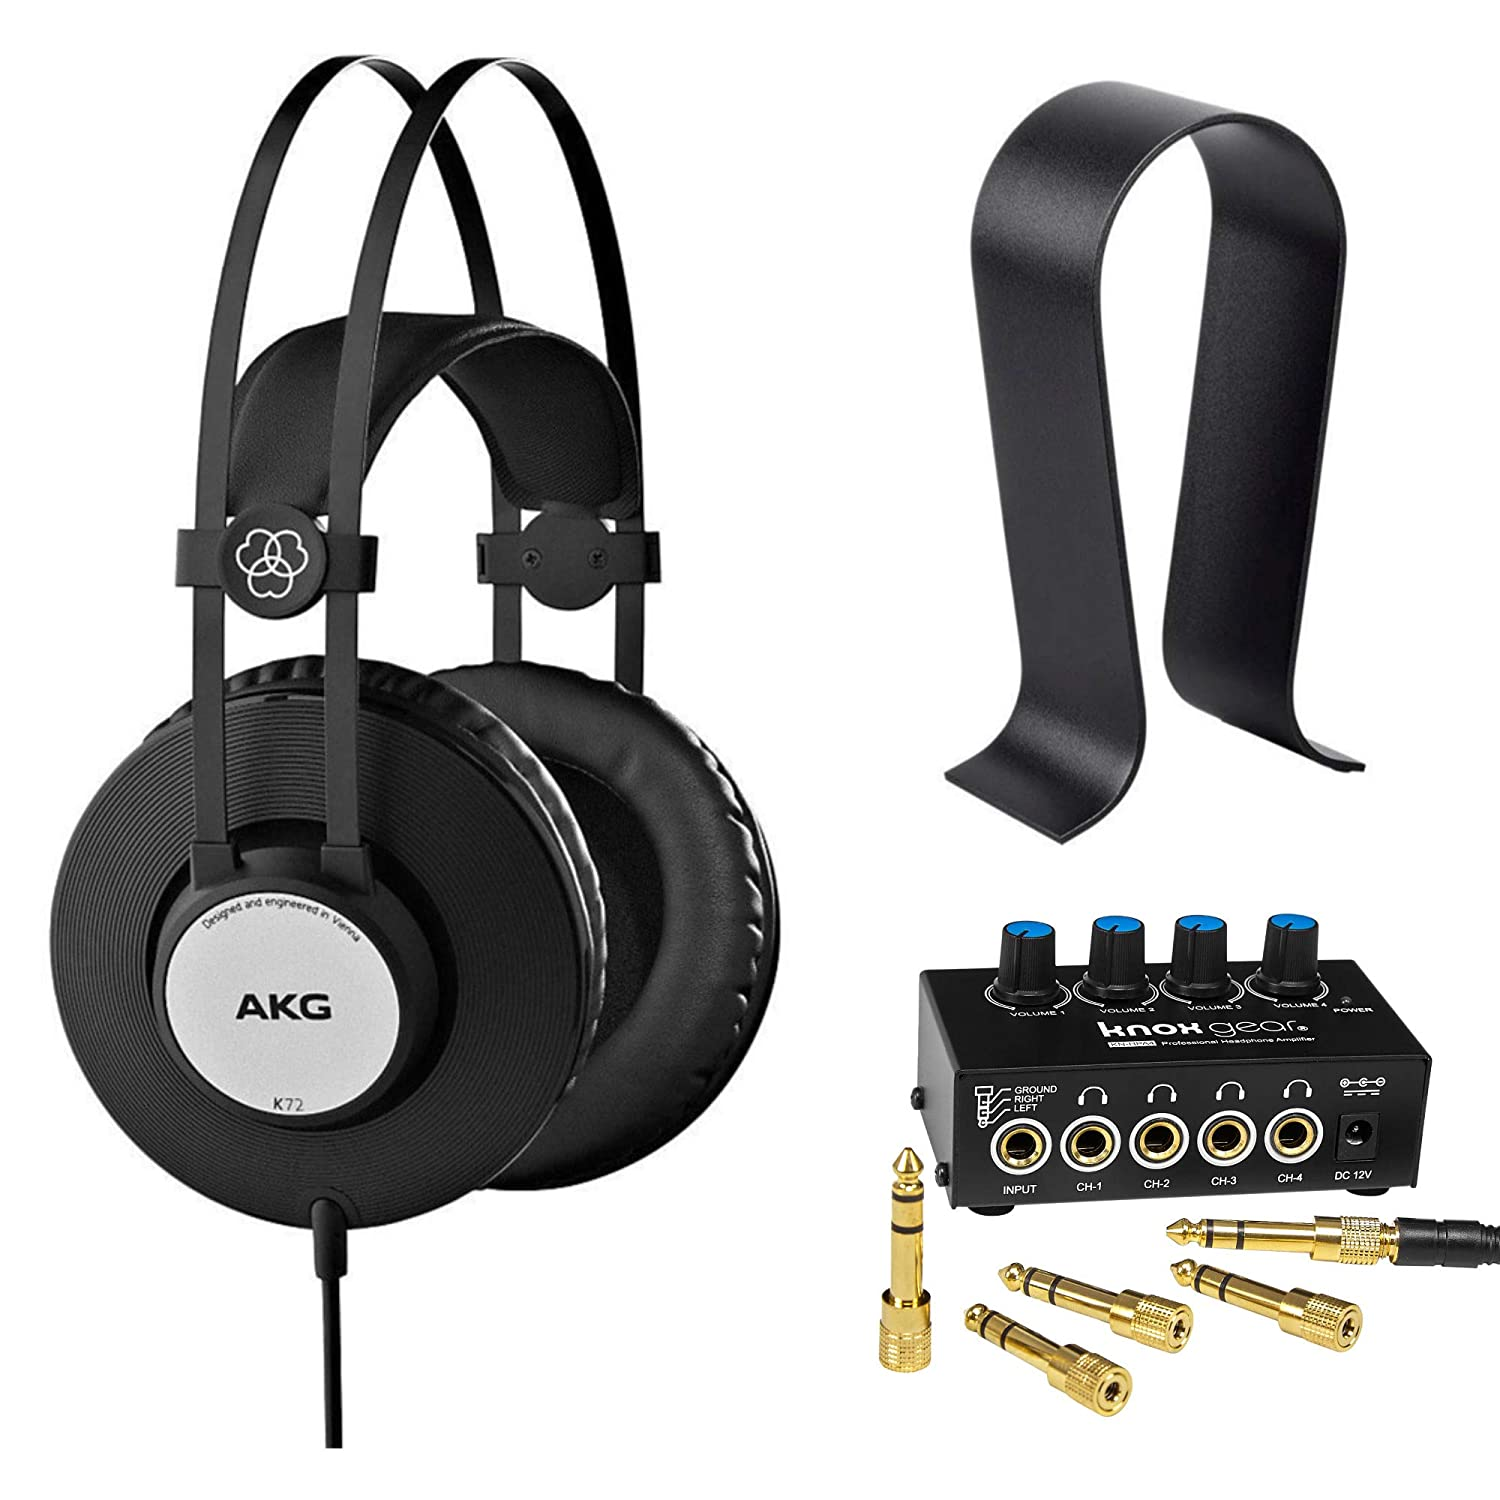 AKG K72 Professional Closed-Back Studio Headphones with Knox Gear Headphone Amplifier and Stand